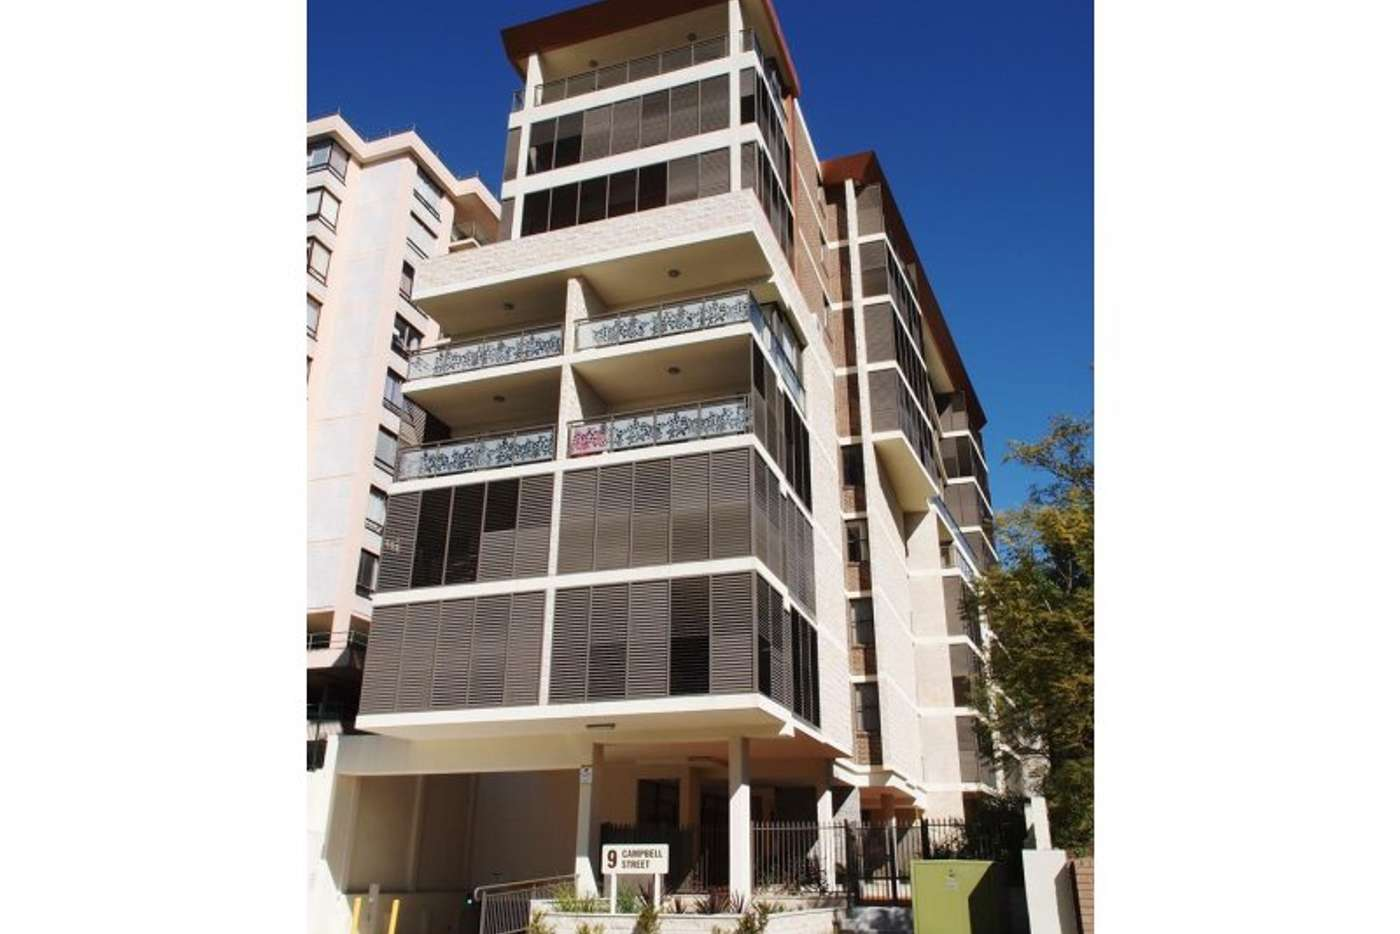 Main view of Homely apartment listing, 28/9 Campbell Street, Parramatta NSW 2150